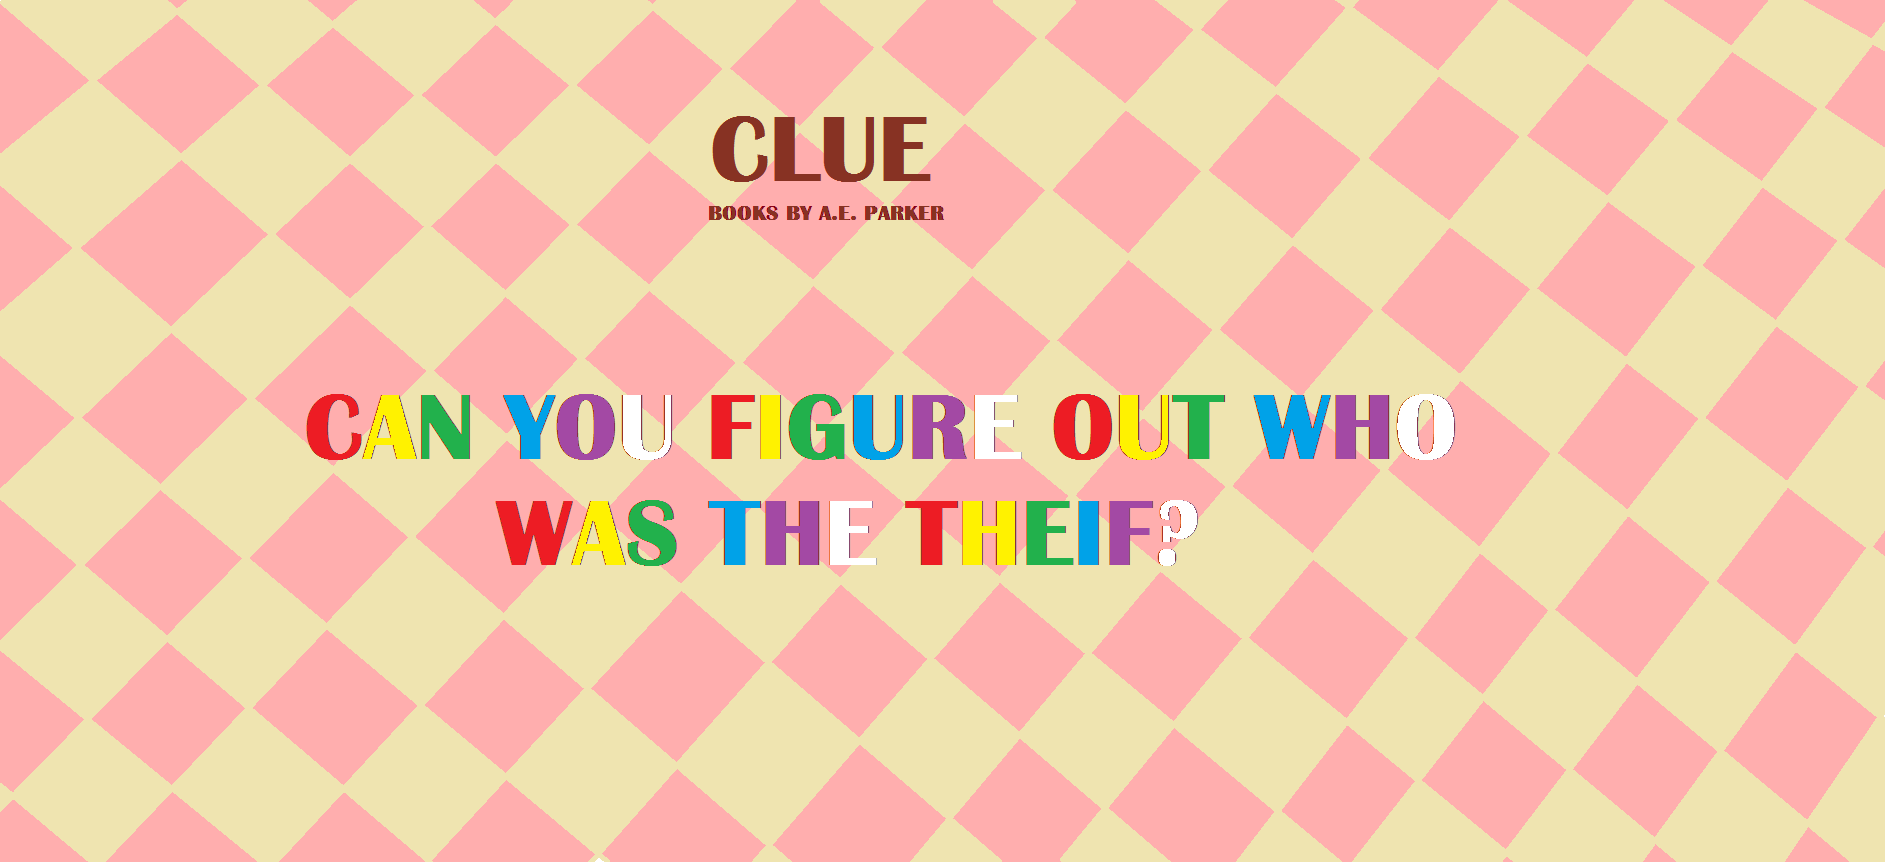 What clue character are you?